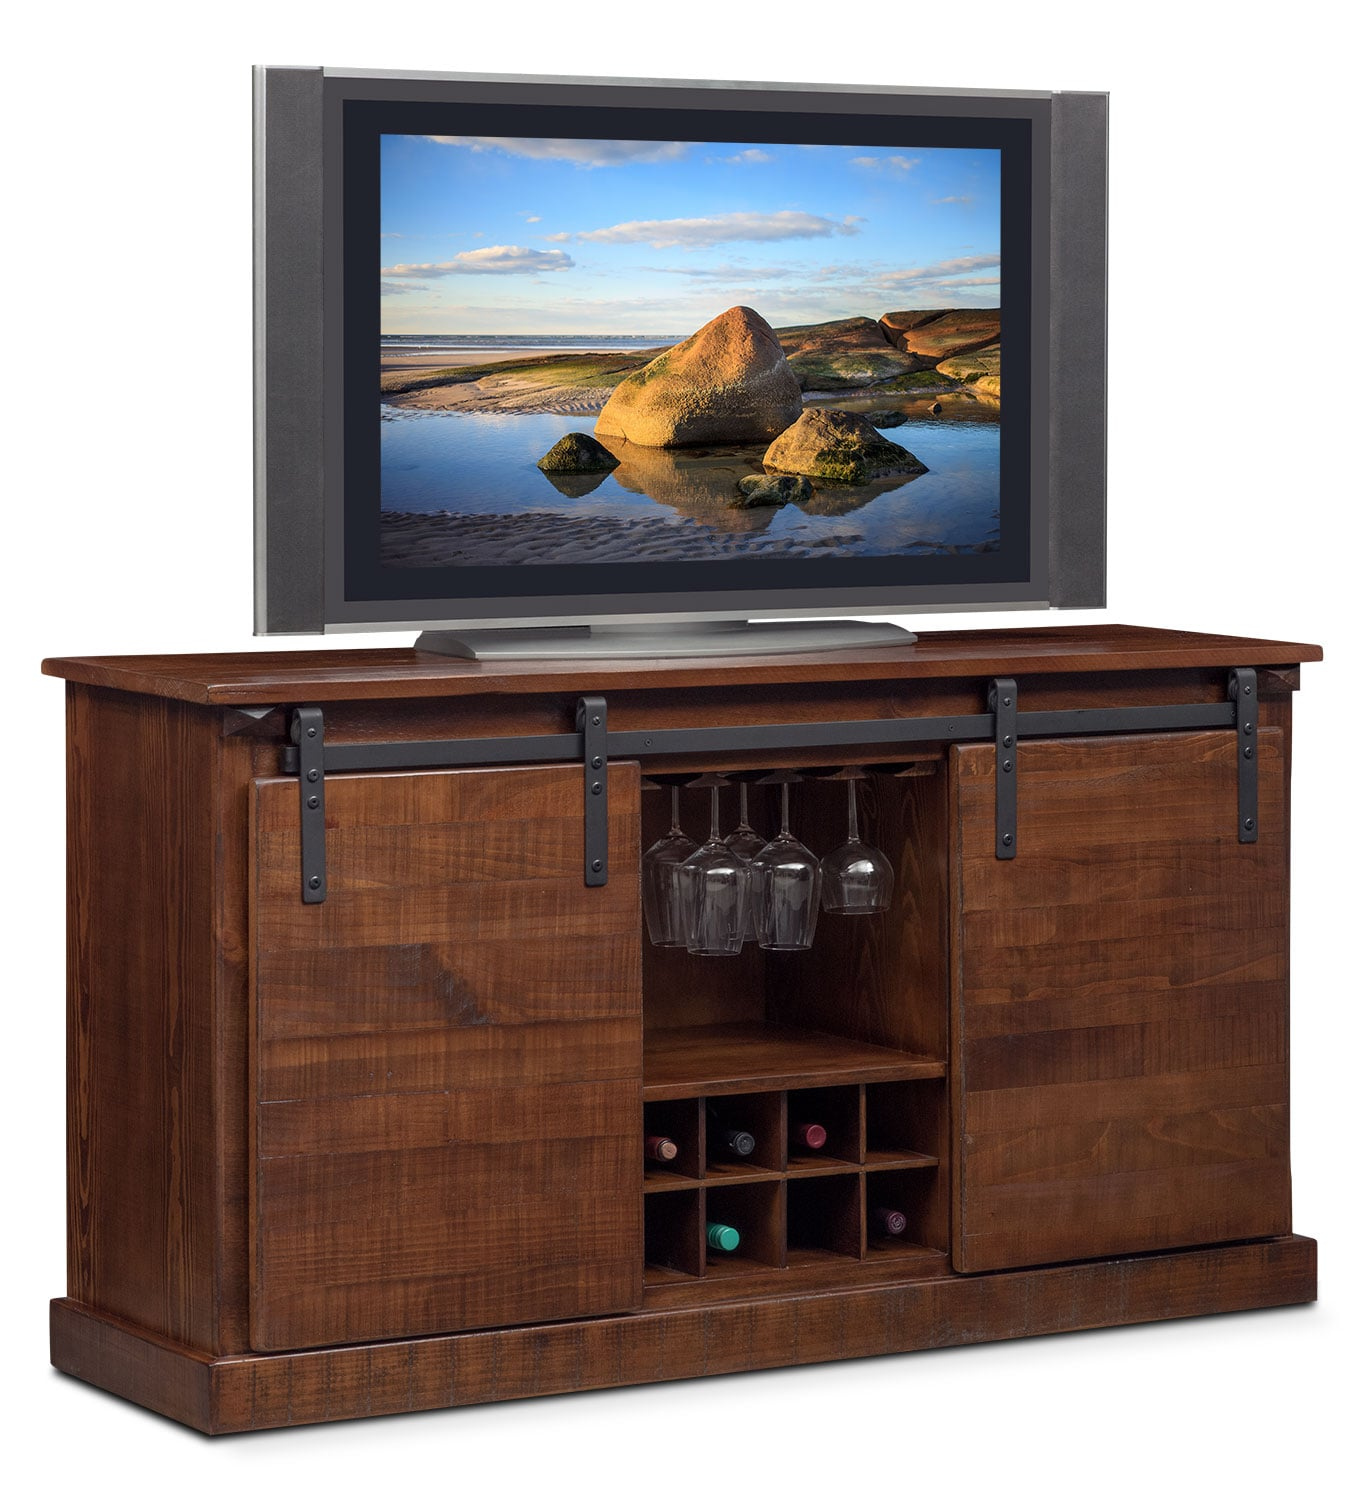 Ashcroft Media Credenza with Wine Storage - Chocolate